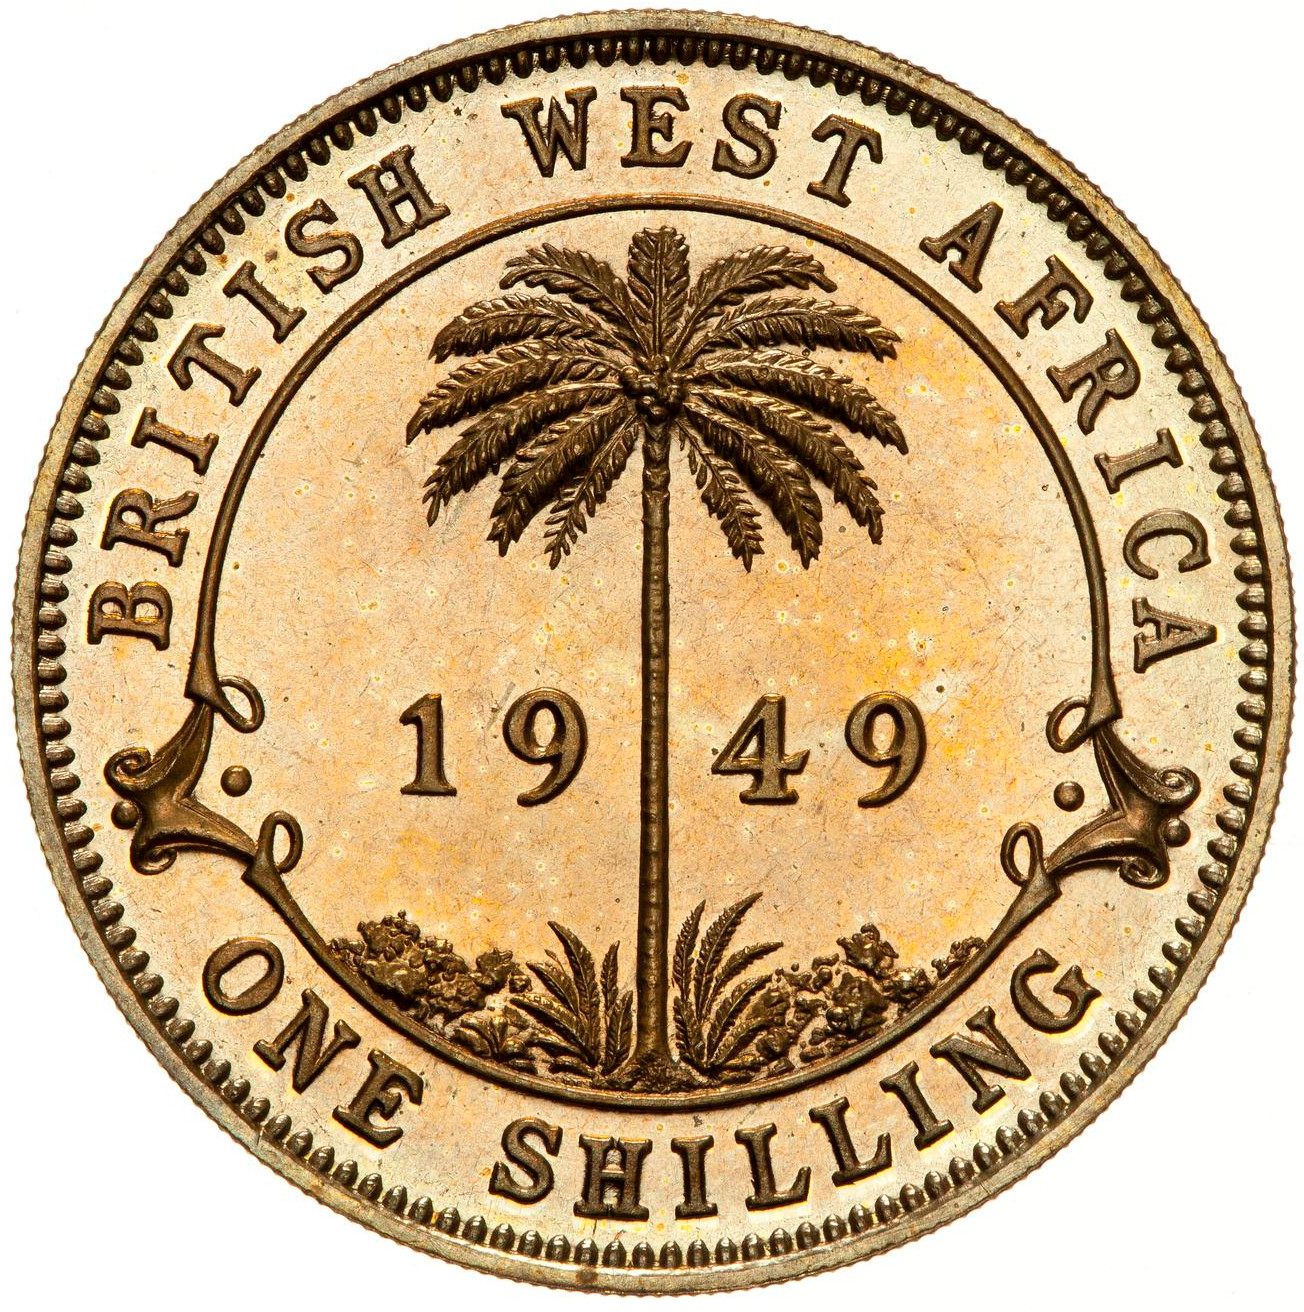 Shilling 1949: Photo Proof Coin - 1 Shilling, British West Africa, 1949